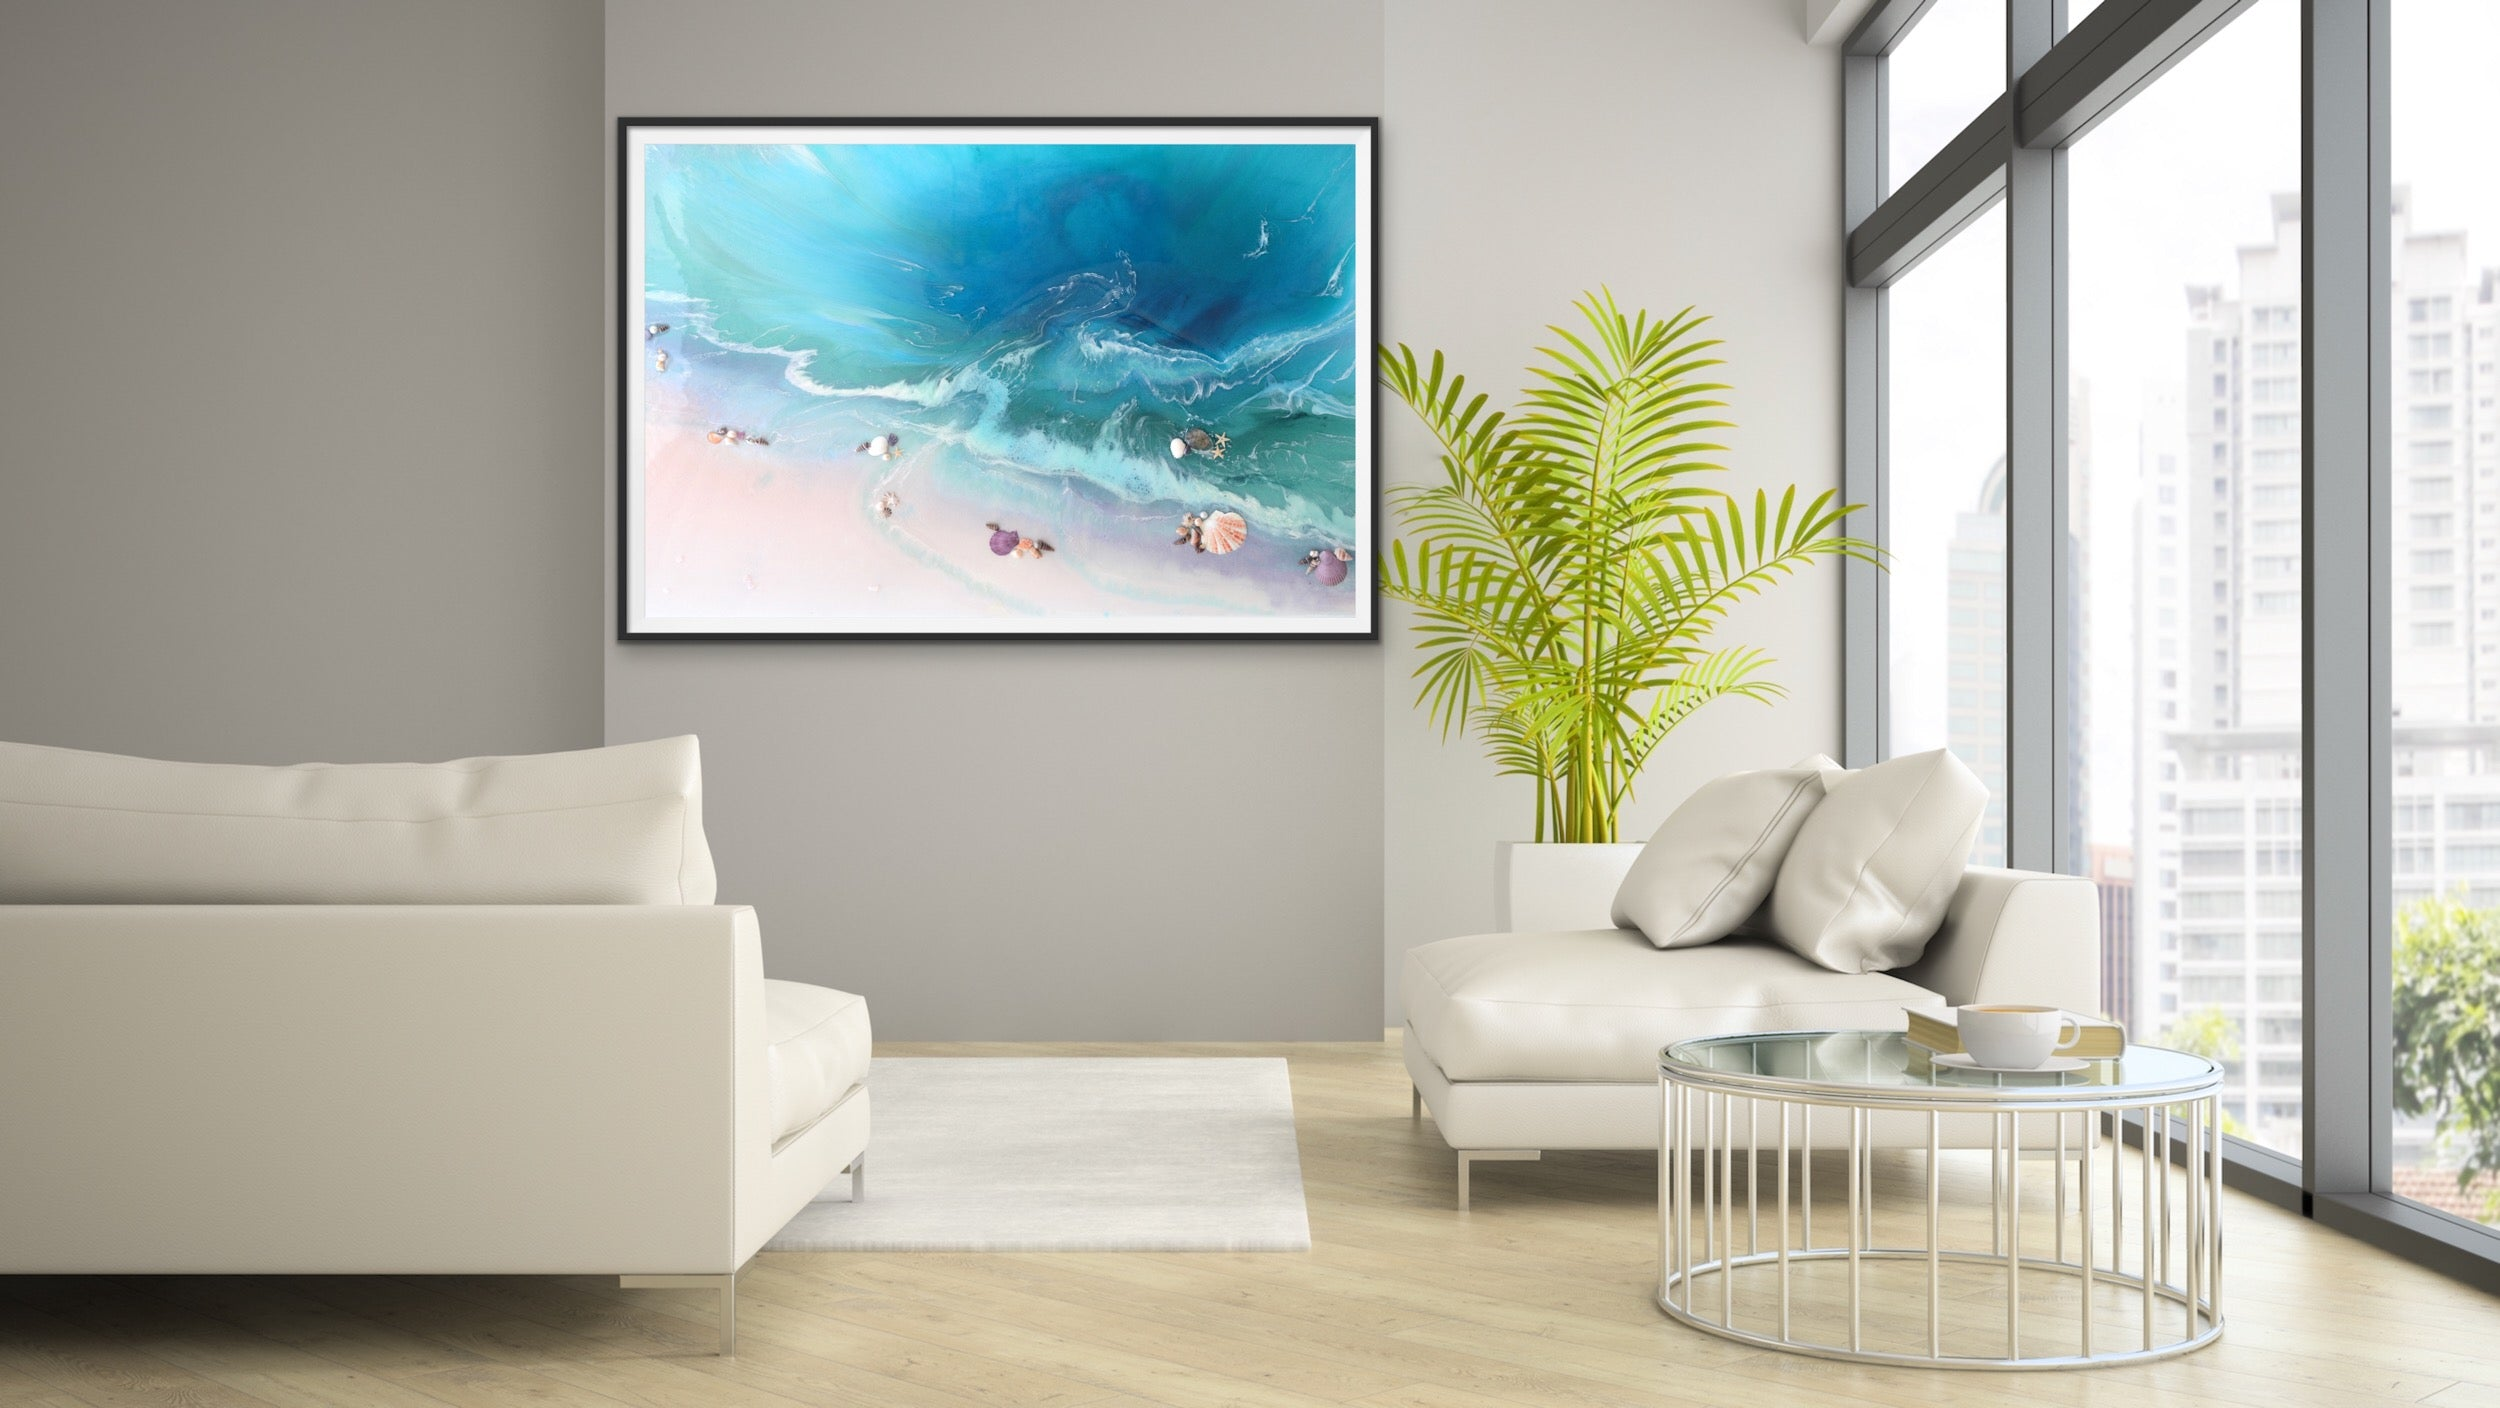 Abstract Seascape. Bright Teal. Bounty Dream. Art Print. Antuanelle 3 Dream Ocean Beach Wall. Limited Edition Print